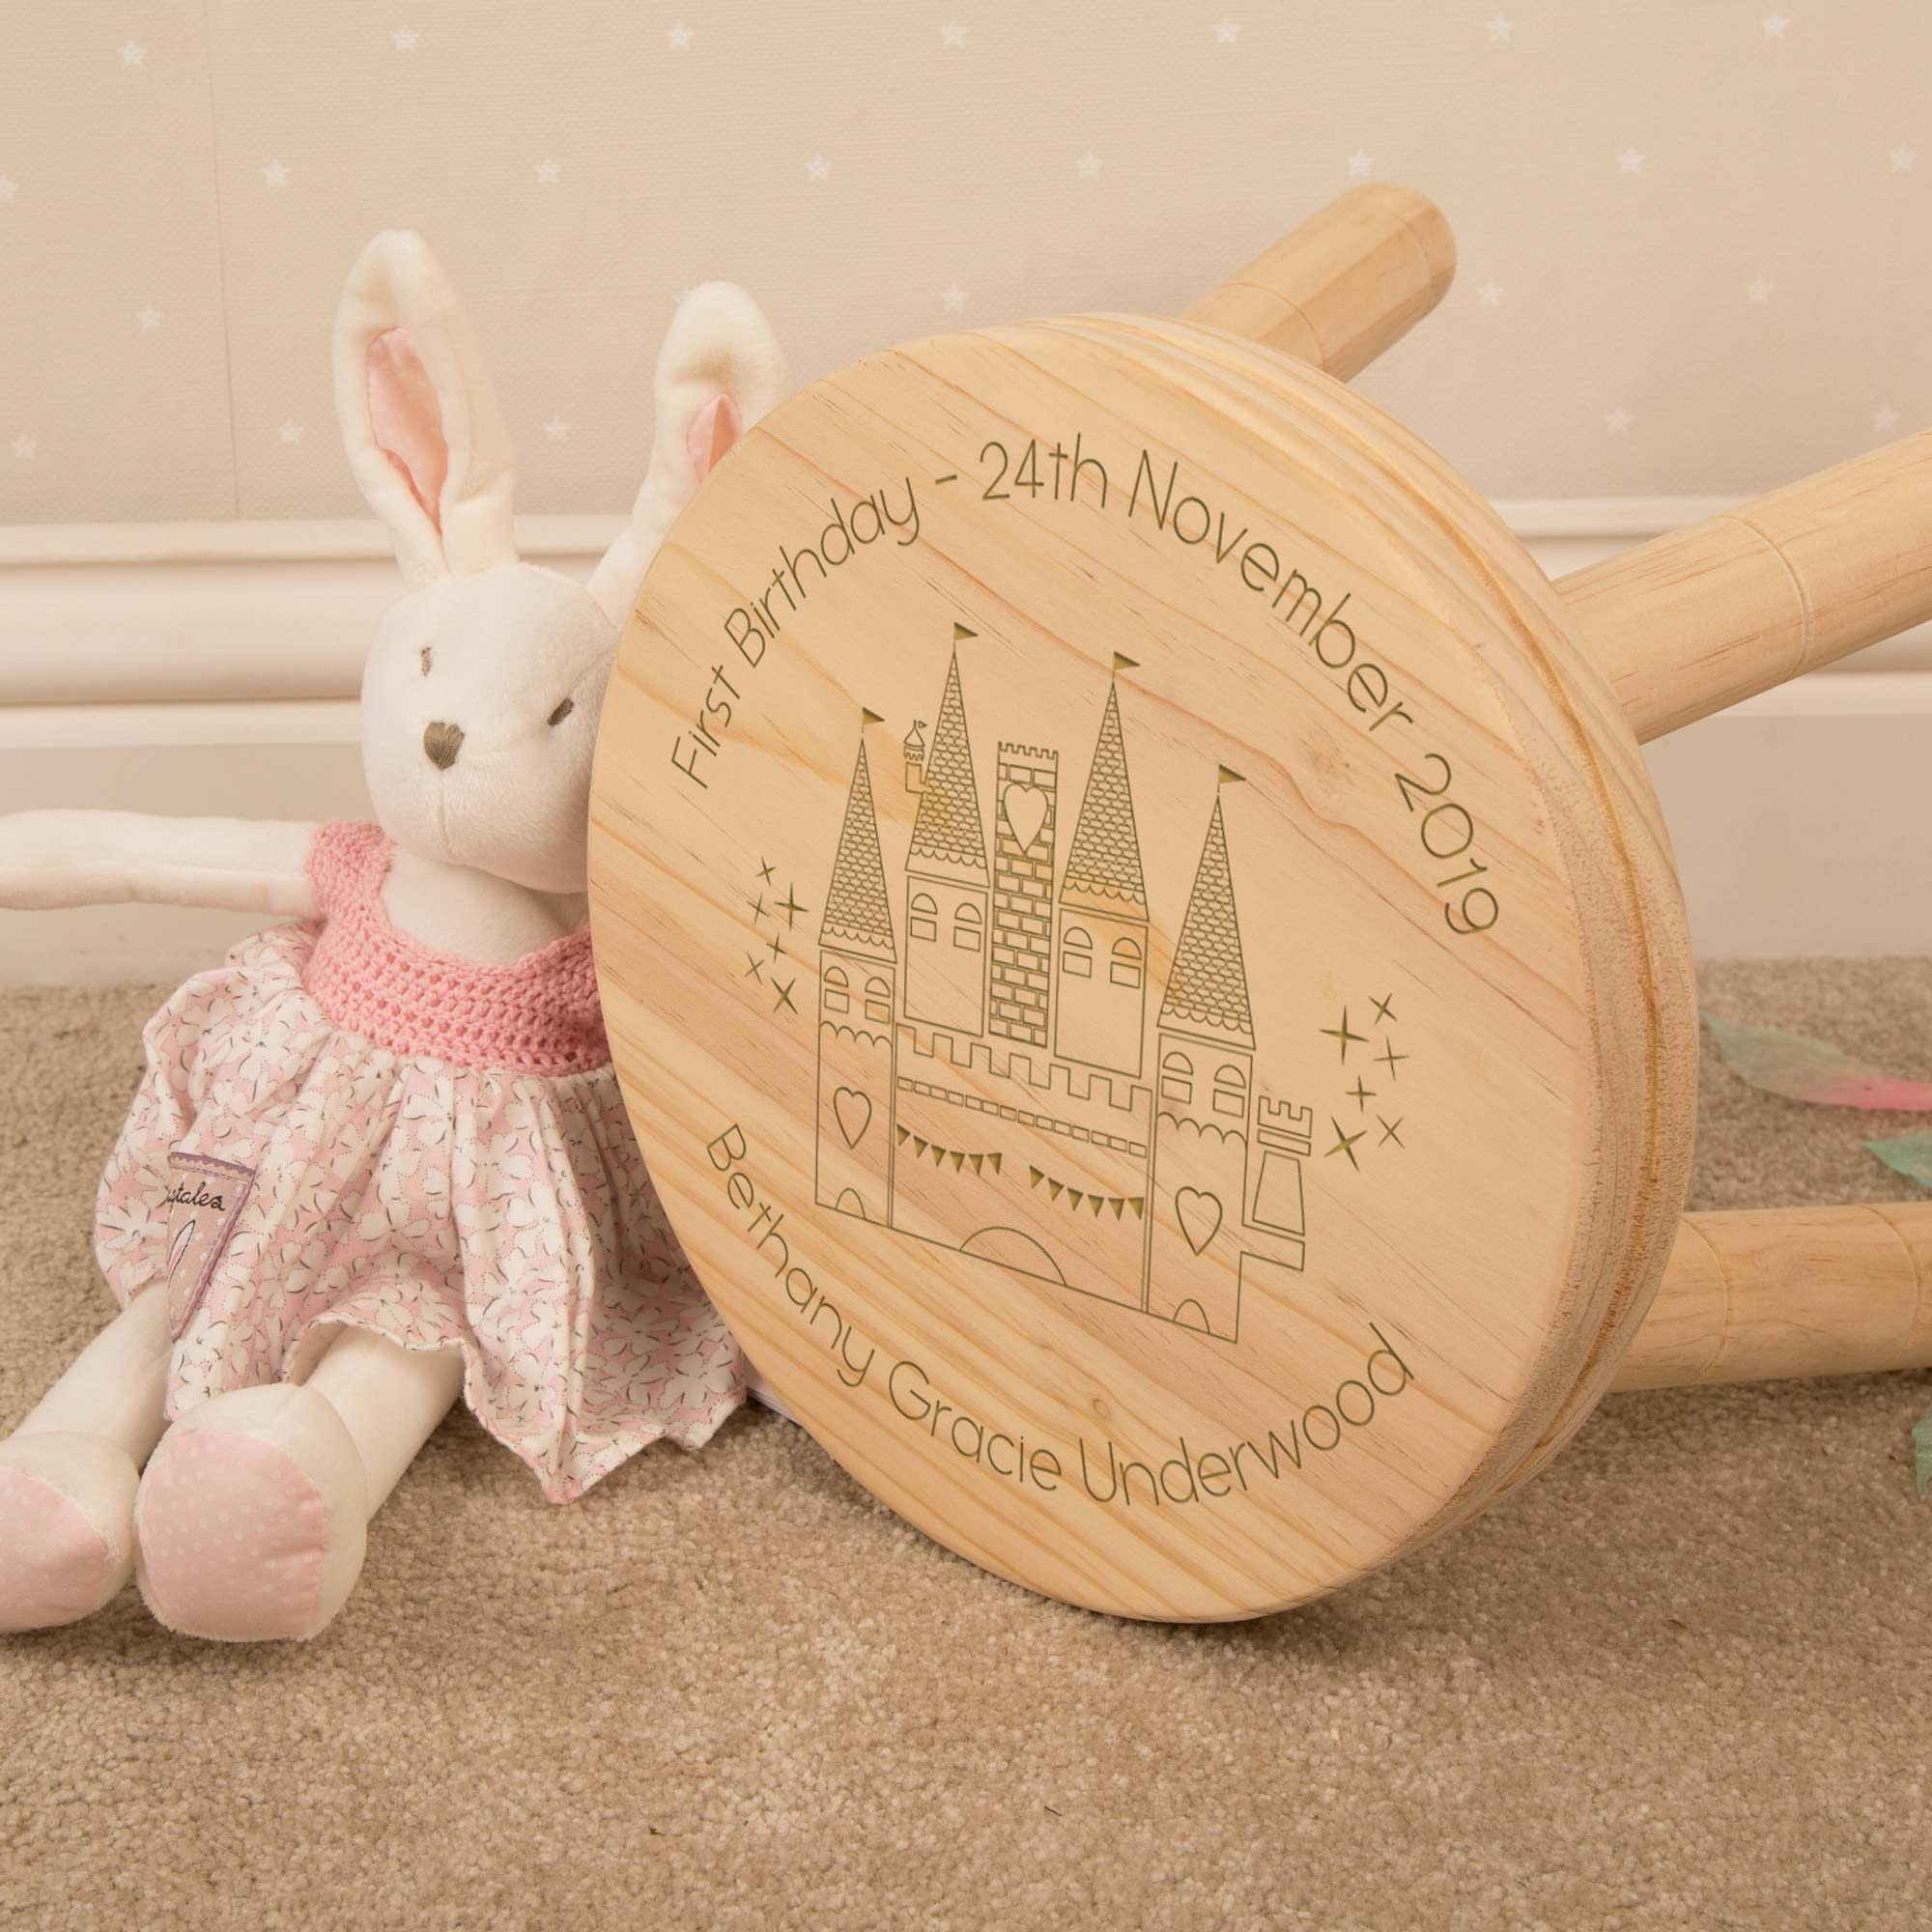 PersonalisedMagic Castle Wooden Stool, Furniture by Low Cost Gifts